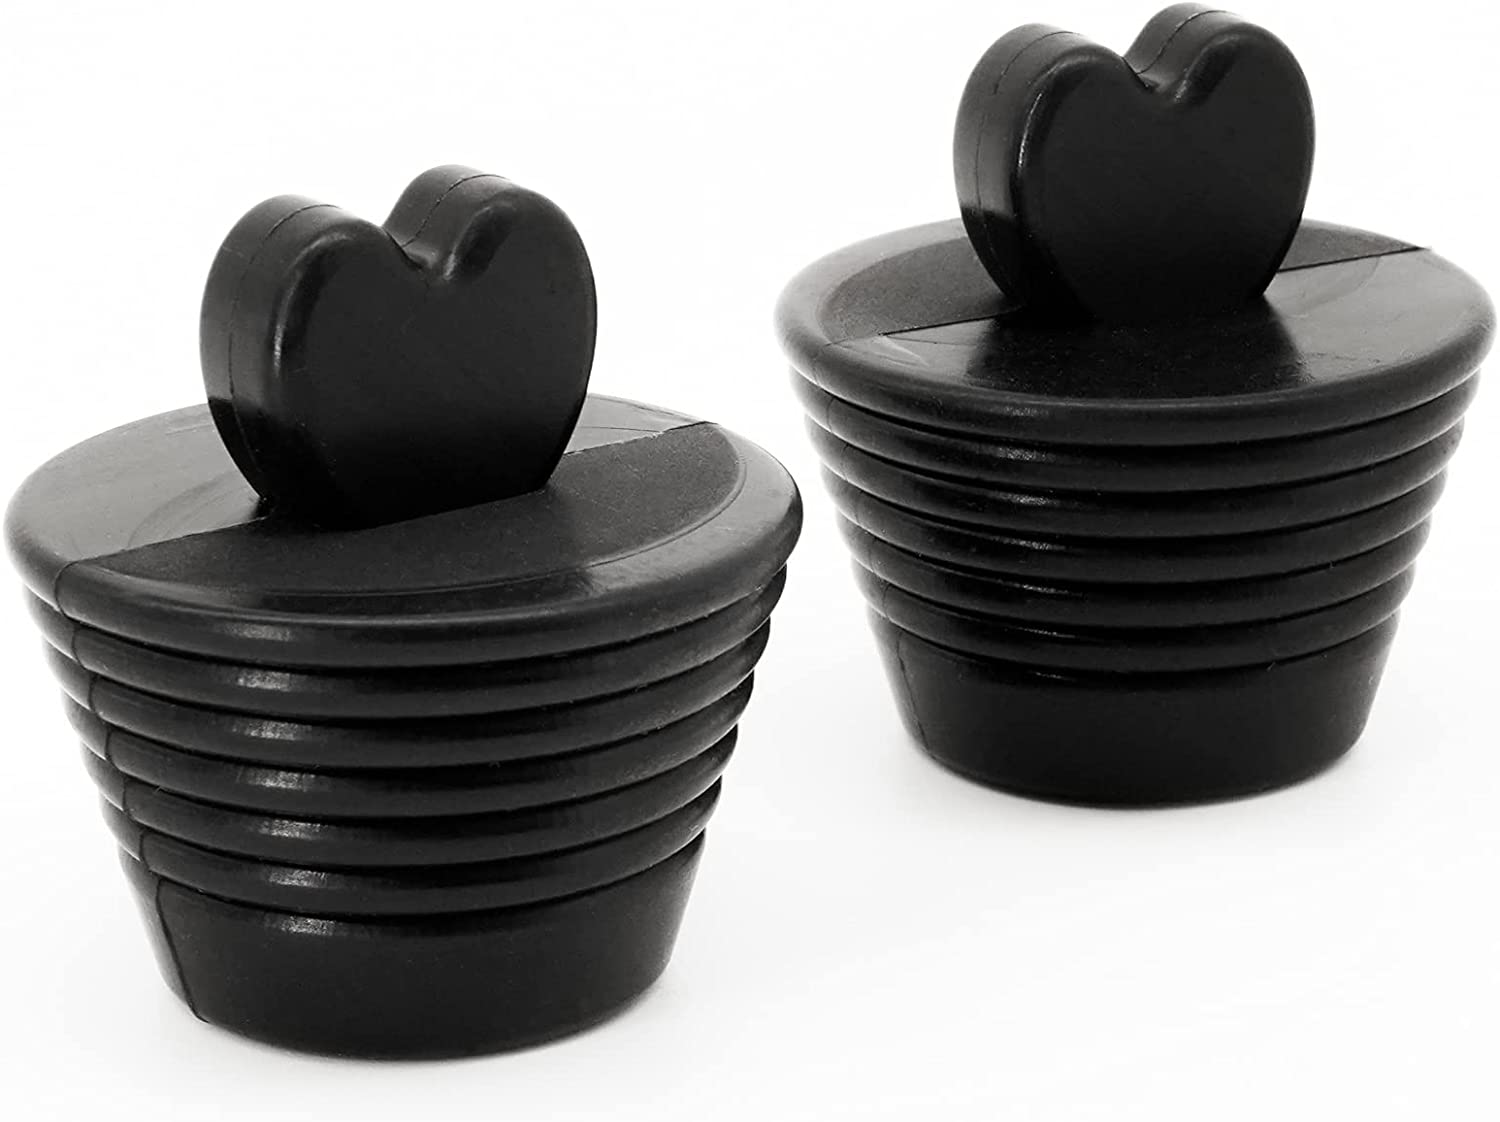 Bathtub Stopper 2 Pack Universal Tub Now quality assurance free shipping Silicone